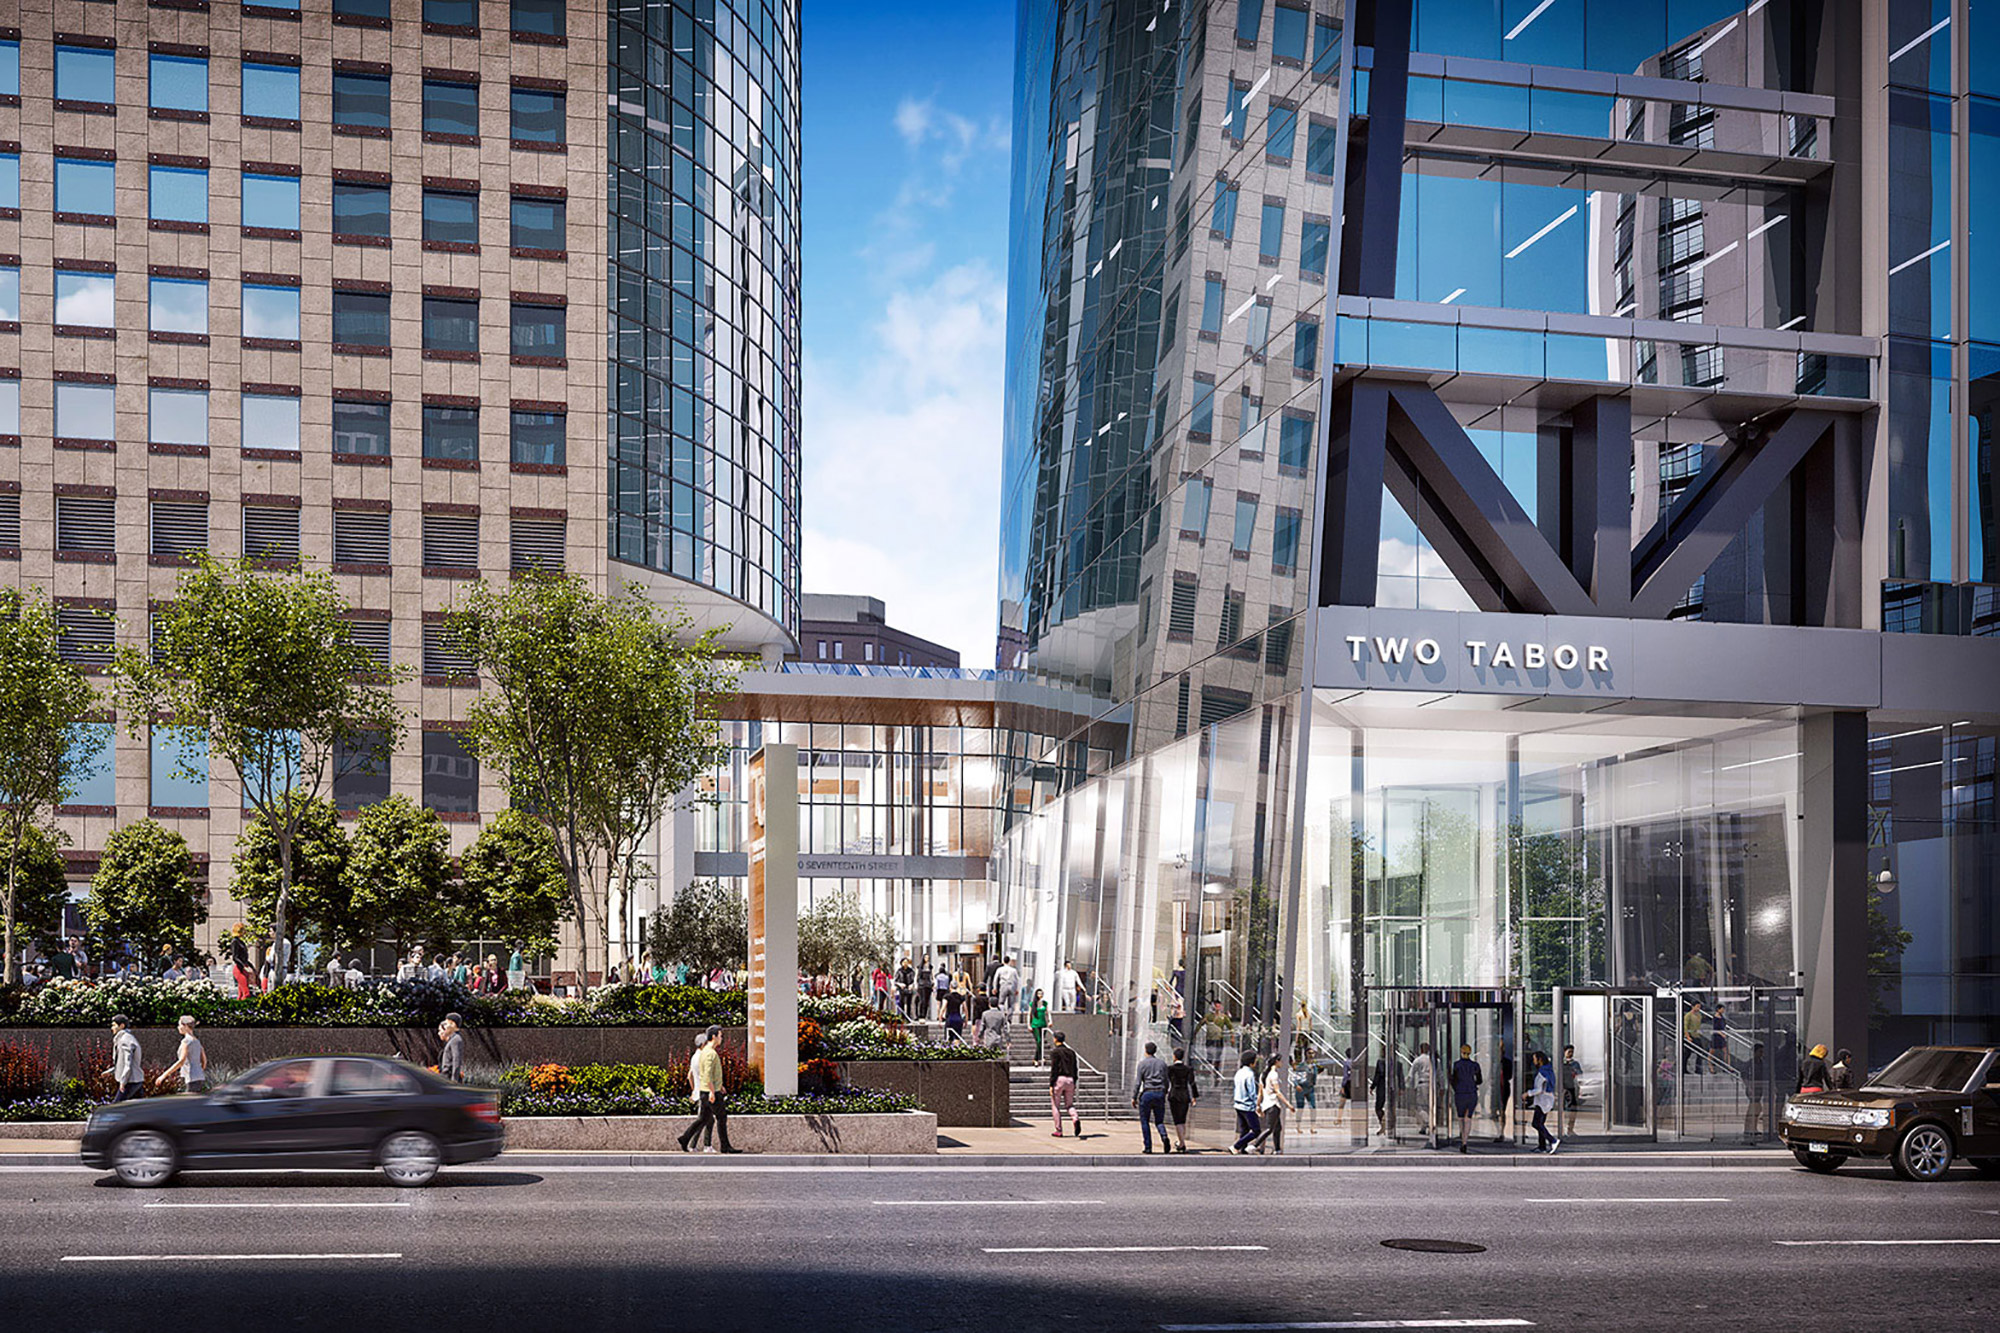 Two Tabor plaza and lobby rendering, courtesy of Callahan Capital Properties, Davis Partnership Architects, and Epstein